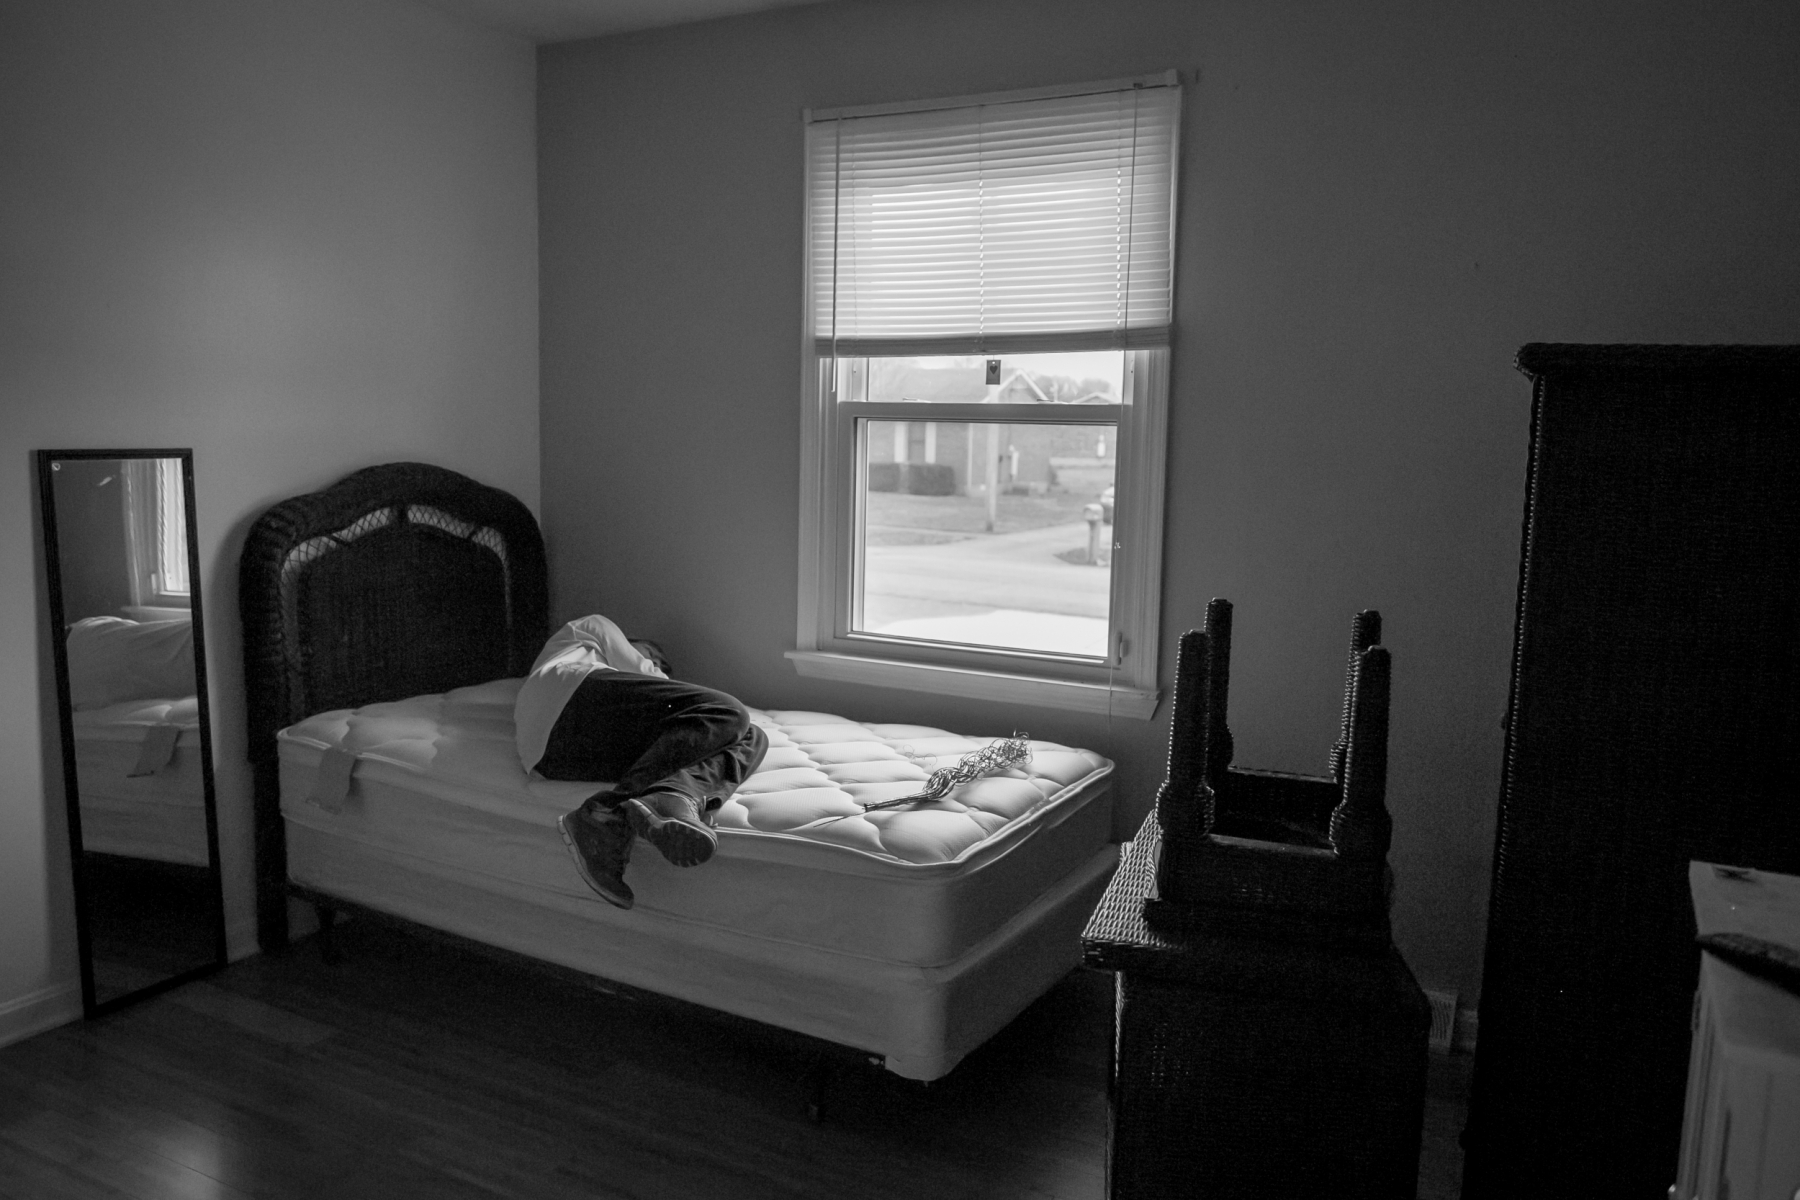 """Melanie lies on Reagan's bed one last time before the movers come to dismantle it to be moved to their new house in Cecelia, Kentucky. """"One of the things that I have clinged to was Reagan's room,"""" she says. """"Trying to keep it the same, walking by her door and even trying to convince myself that she was still in there or would be coming back. So to think about not having that is heartbreaking."""" Melanie is setting up a room for Reagan in her new house."""